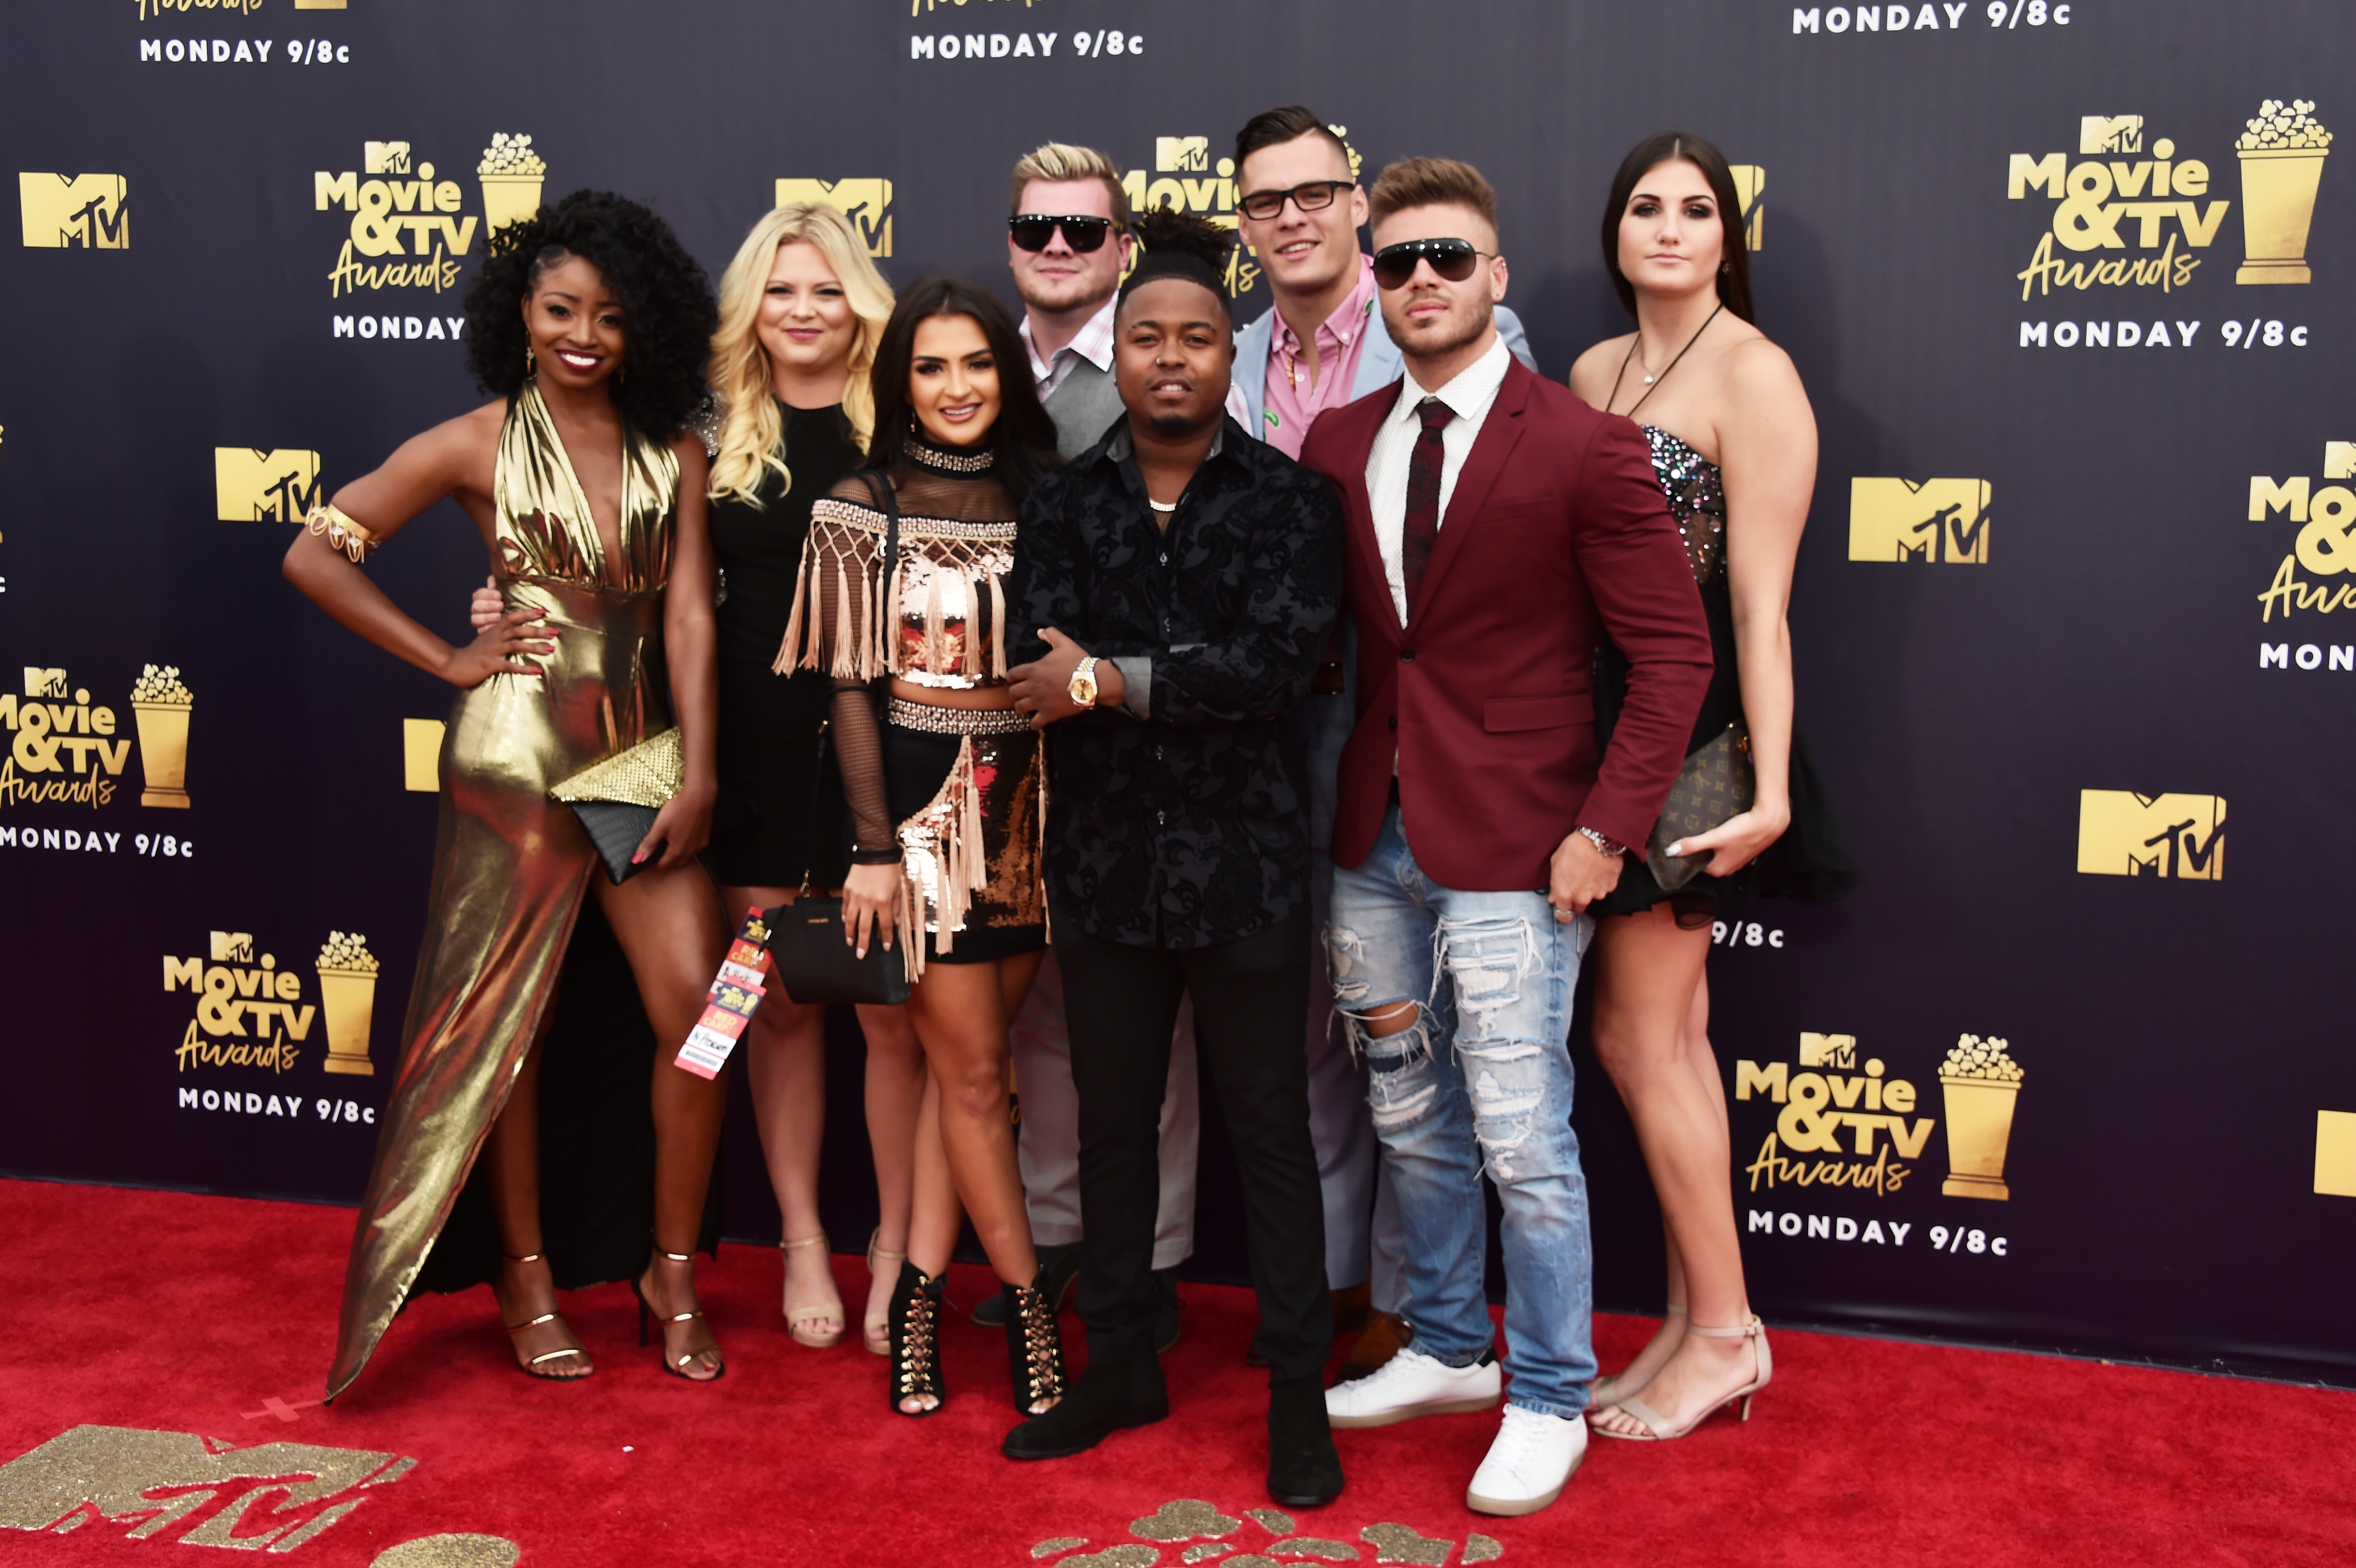 'Floribama Shore' cast members (Source: Getty Images)